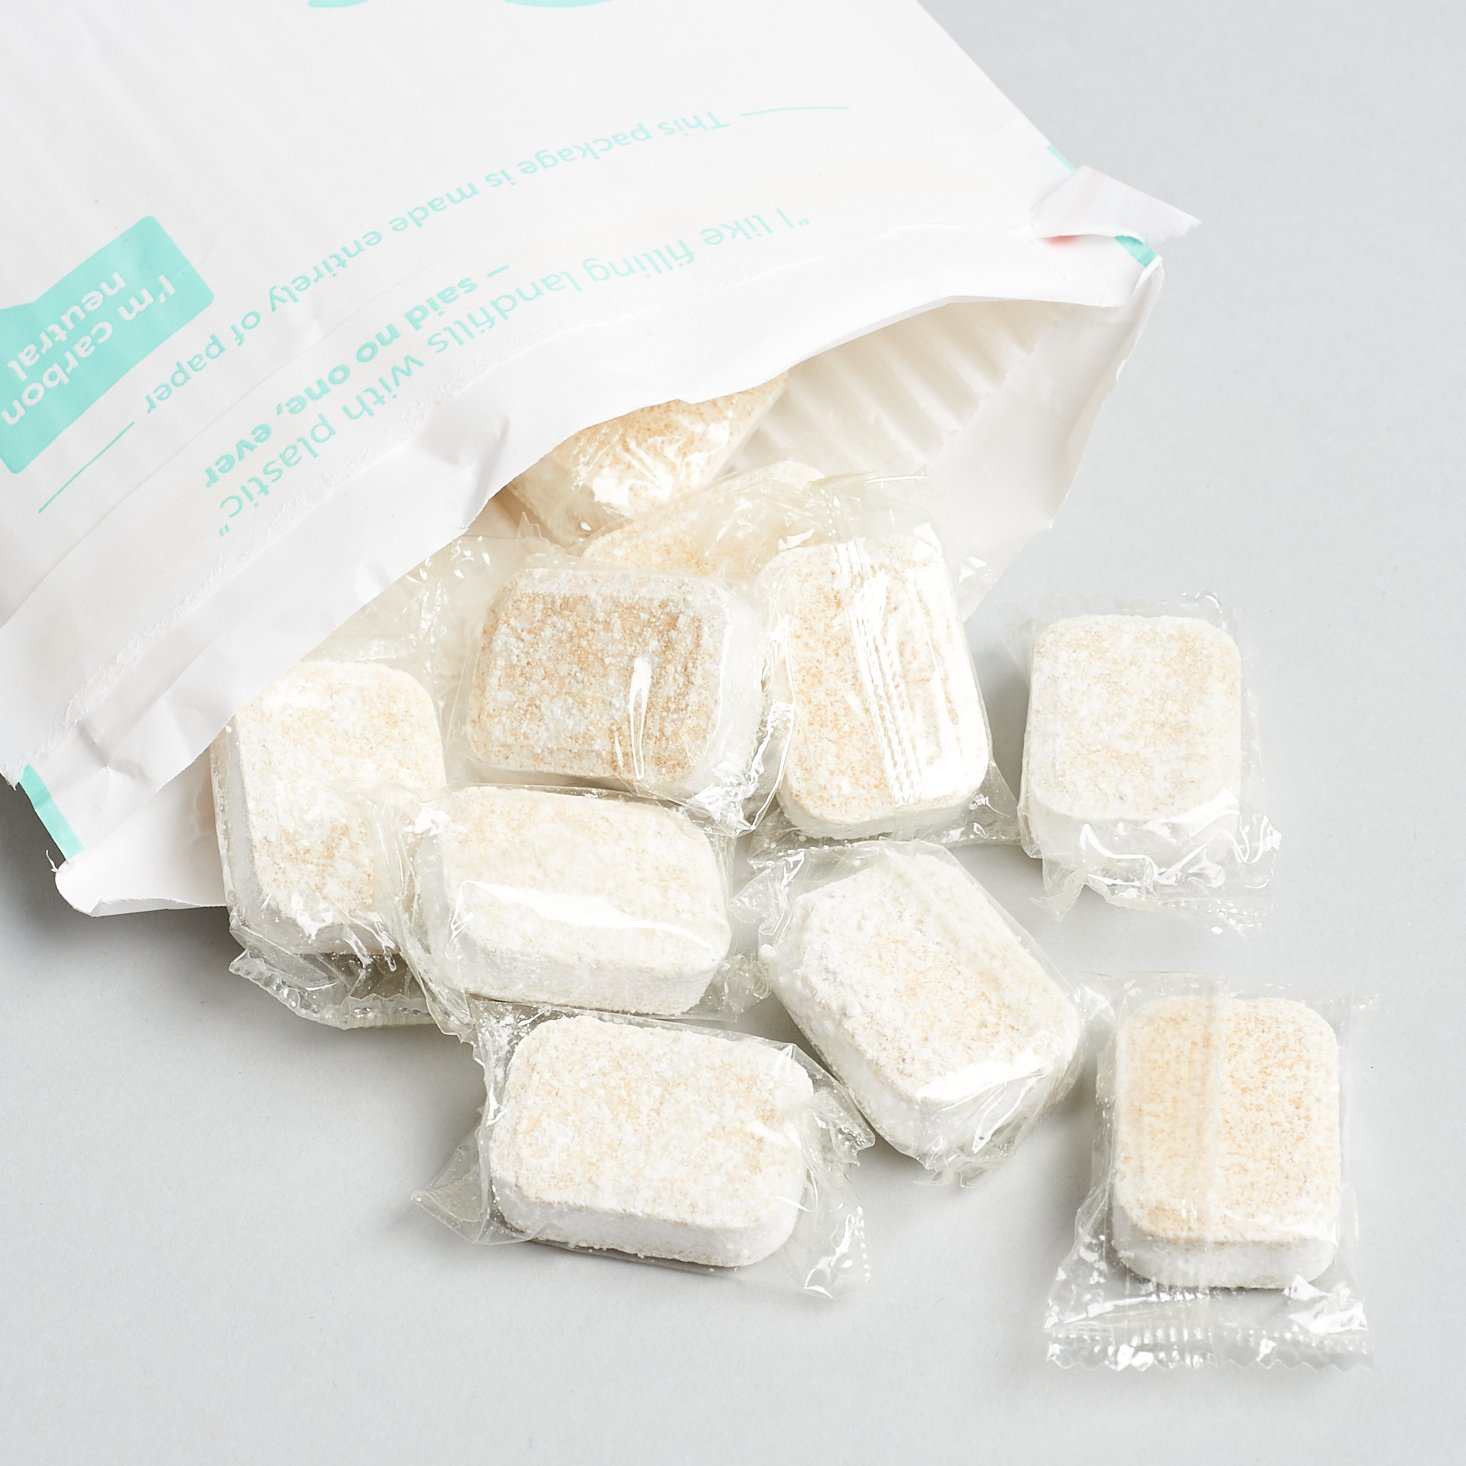 cleancult dishwasher tablet refills spilling out of bag